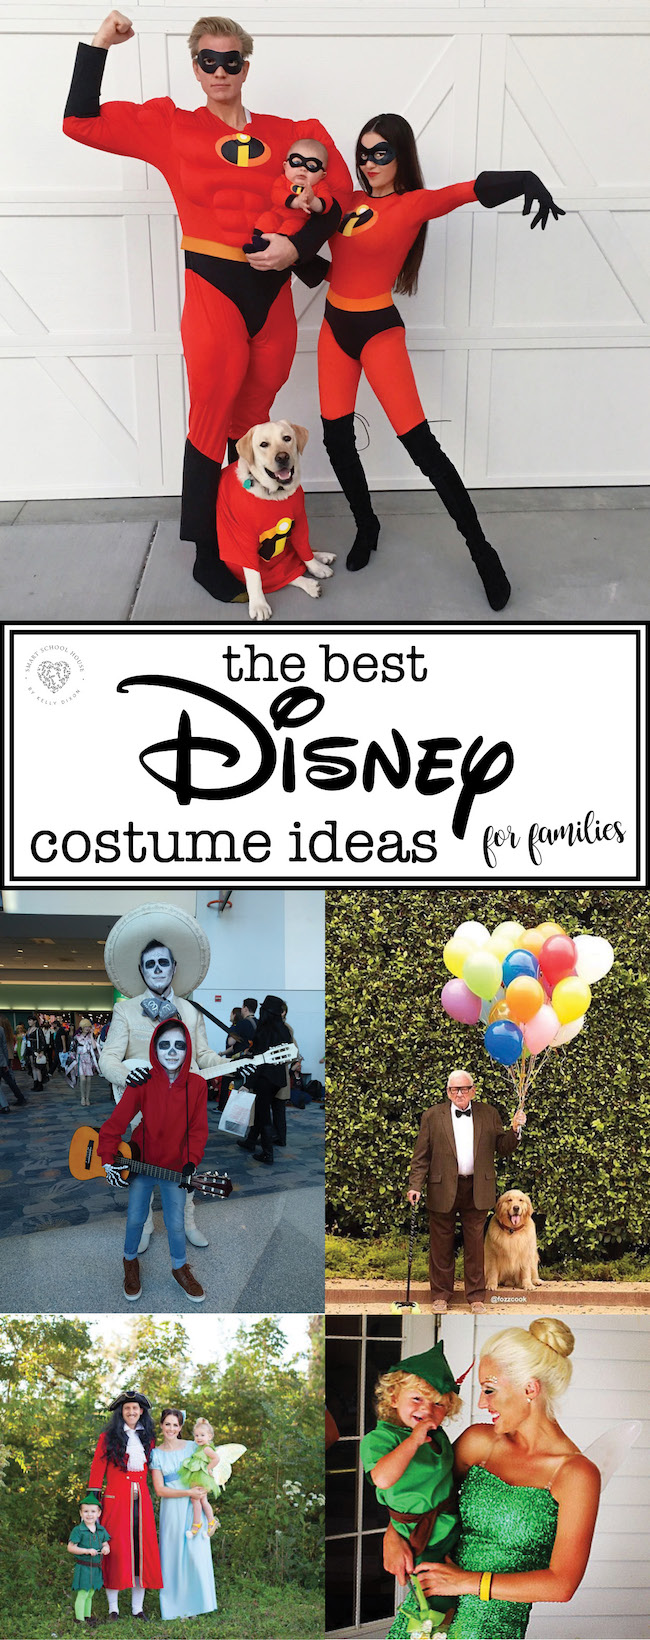 The BEST Disney Costume Ideas for Families! #Disney #Halloween #CostumeIdeas